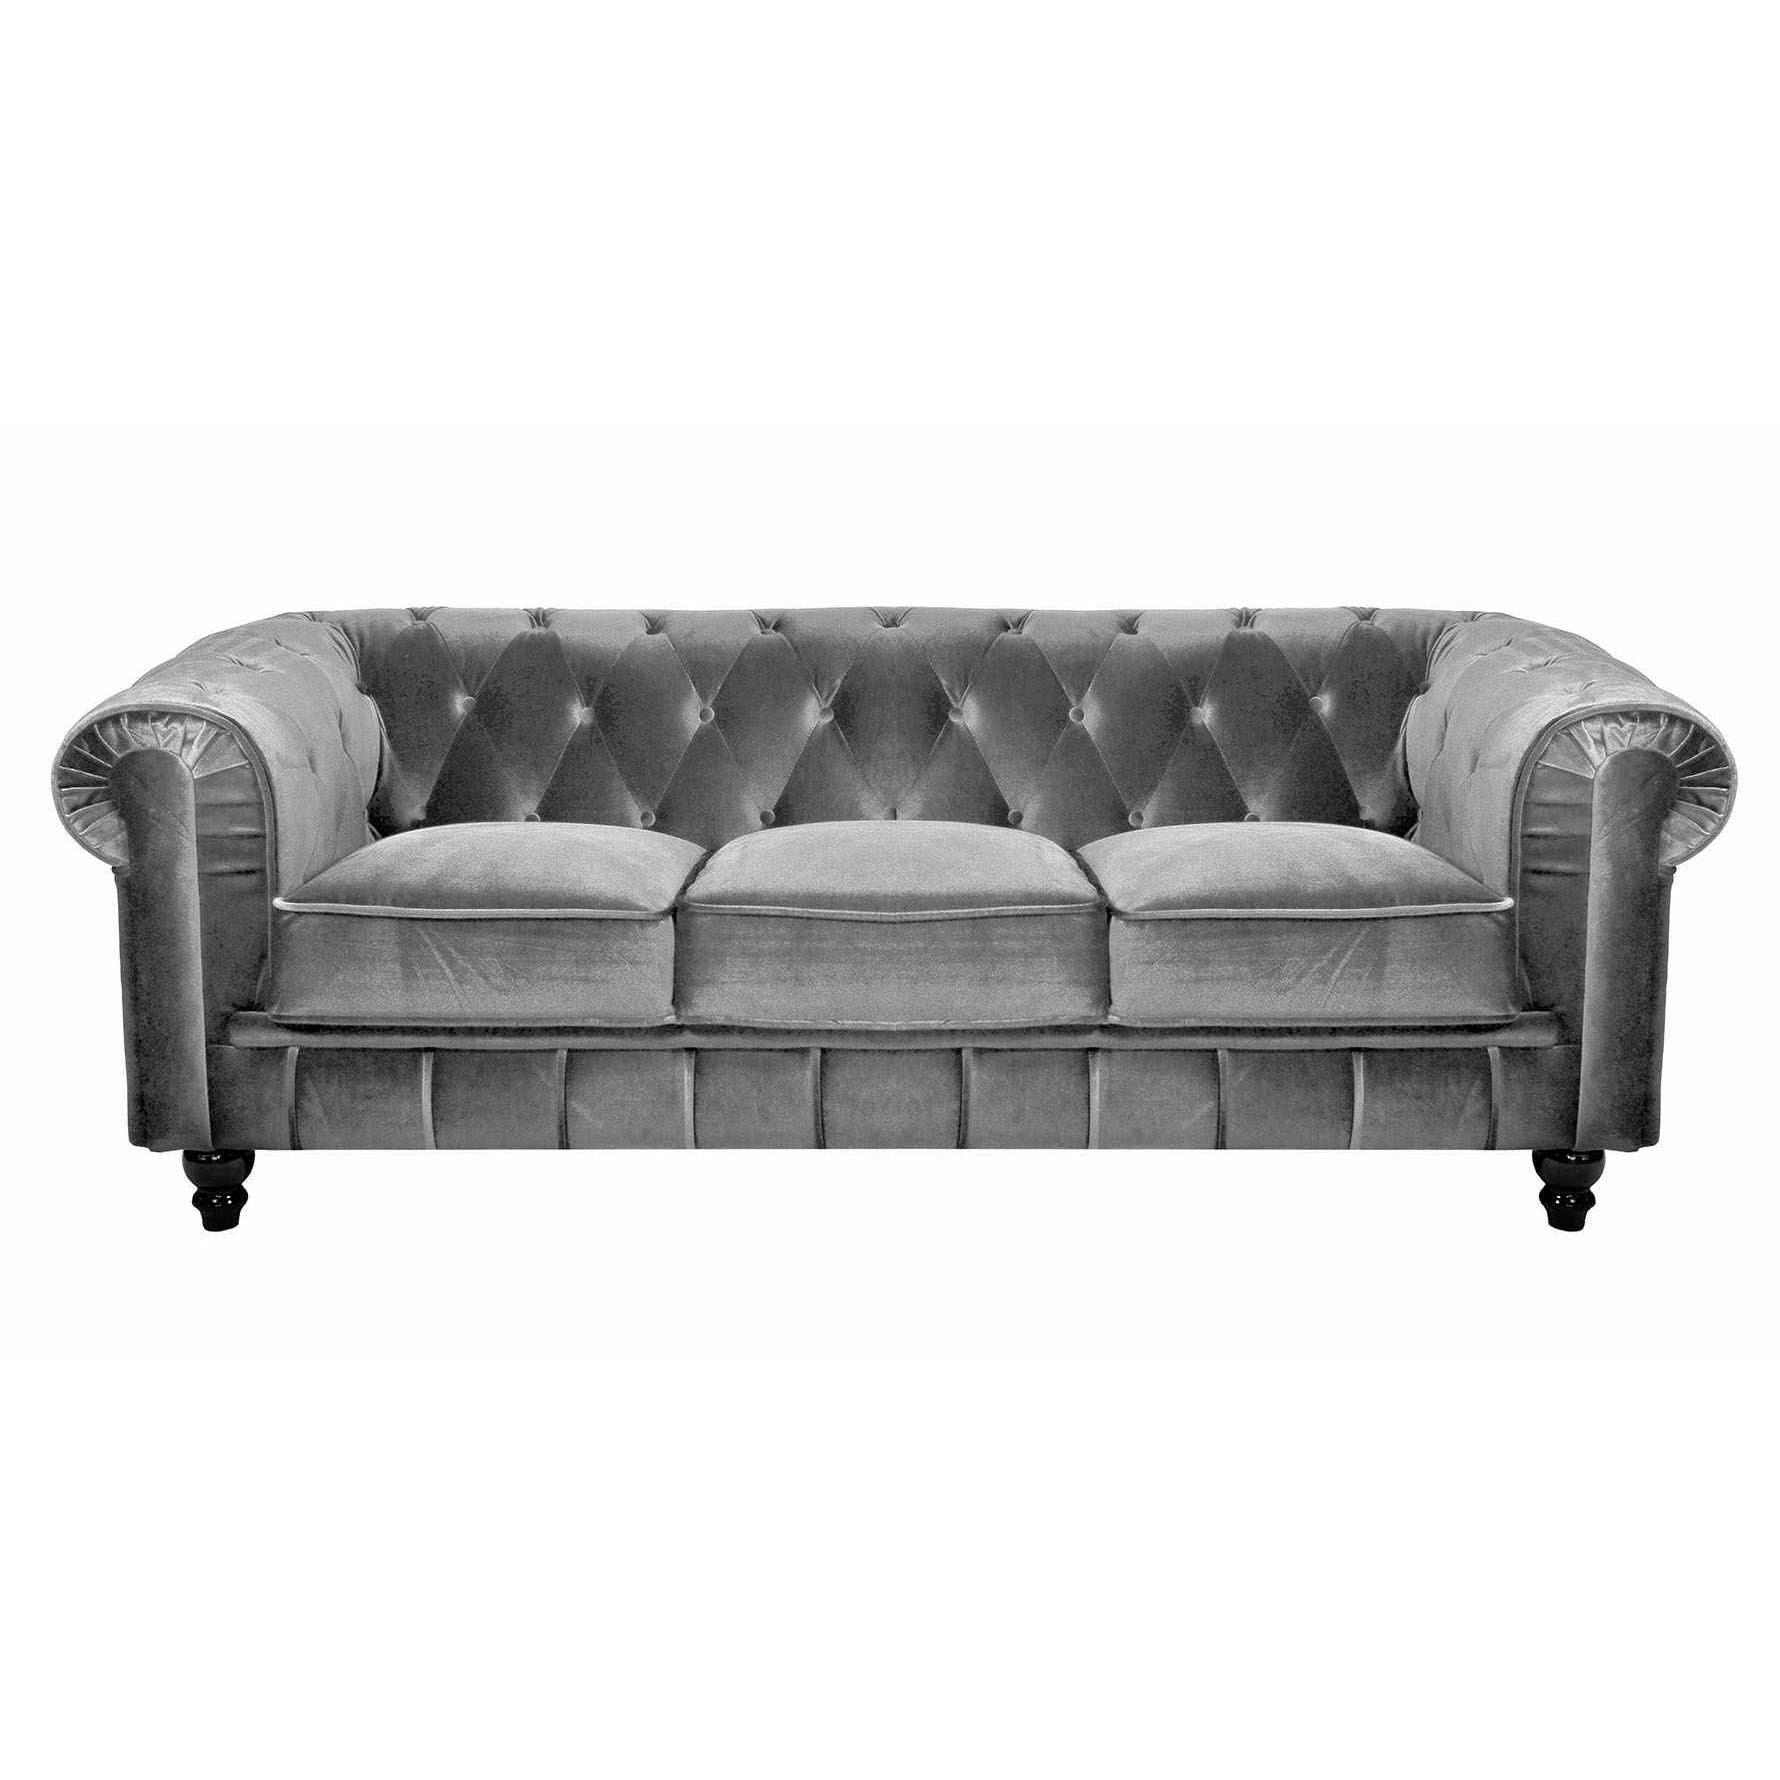 deco in paris canape 3 places velours gris chesterfield can chester 3p velours gris